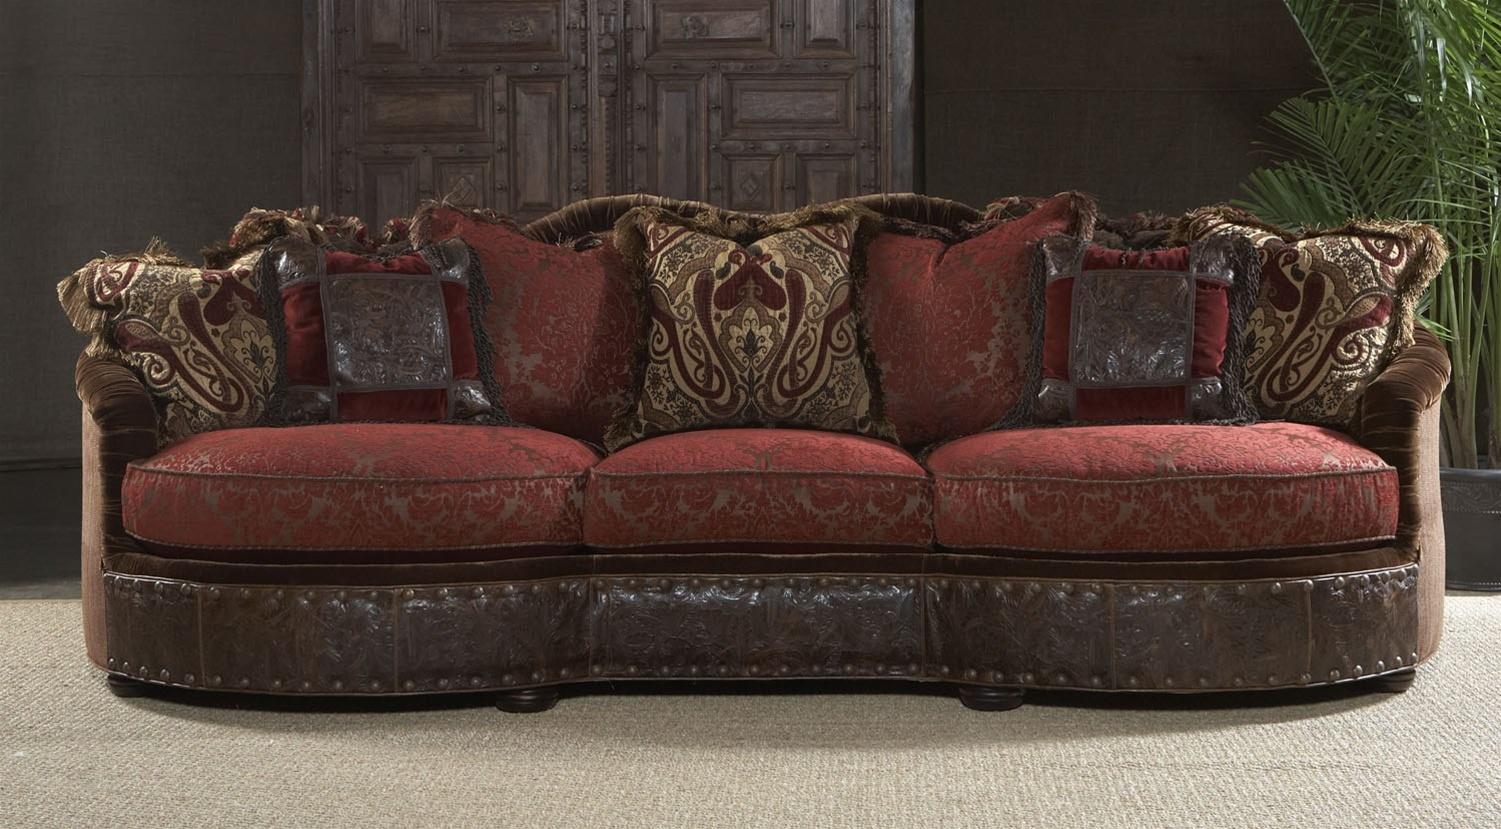 11 Luxury Red Burgundy Sofa Or Couch